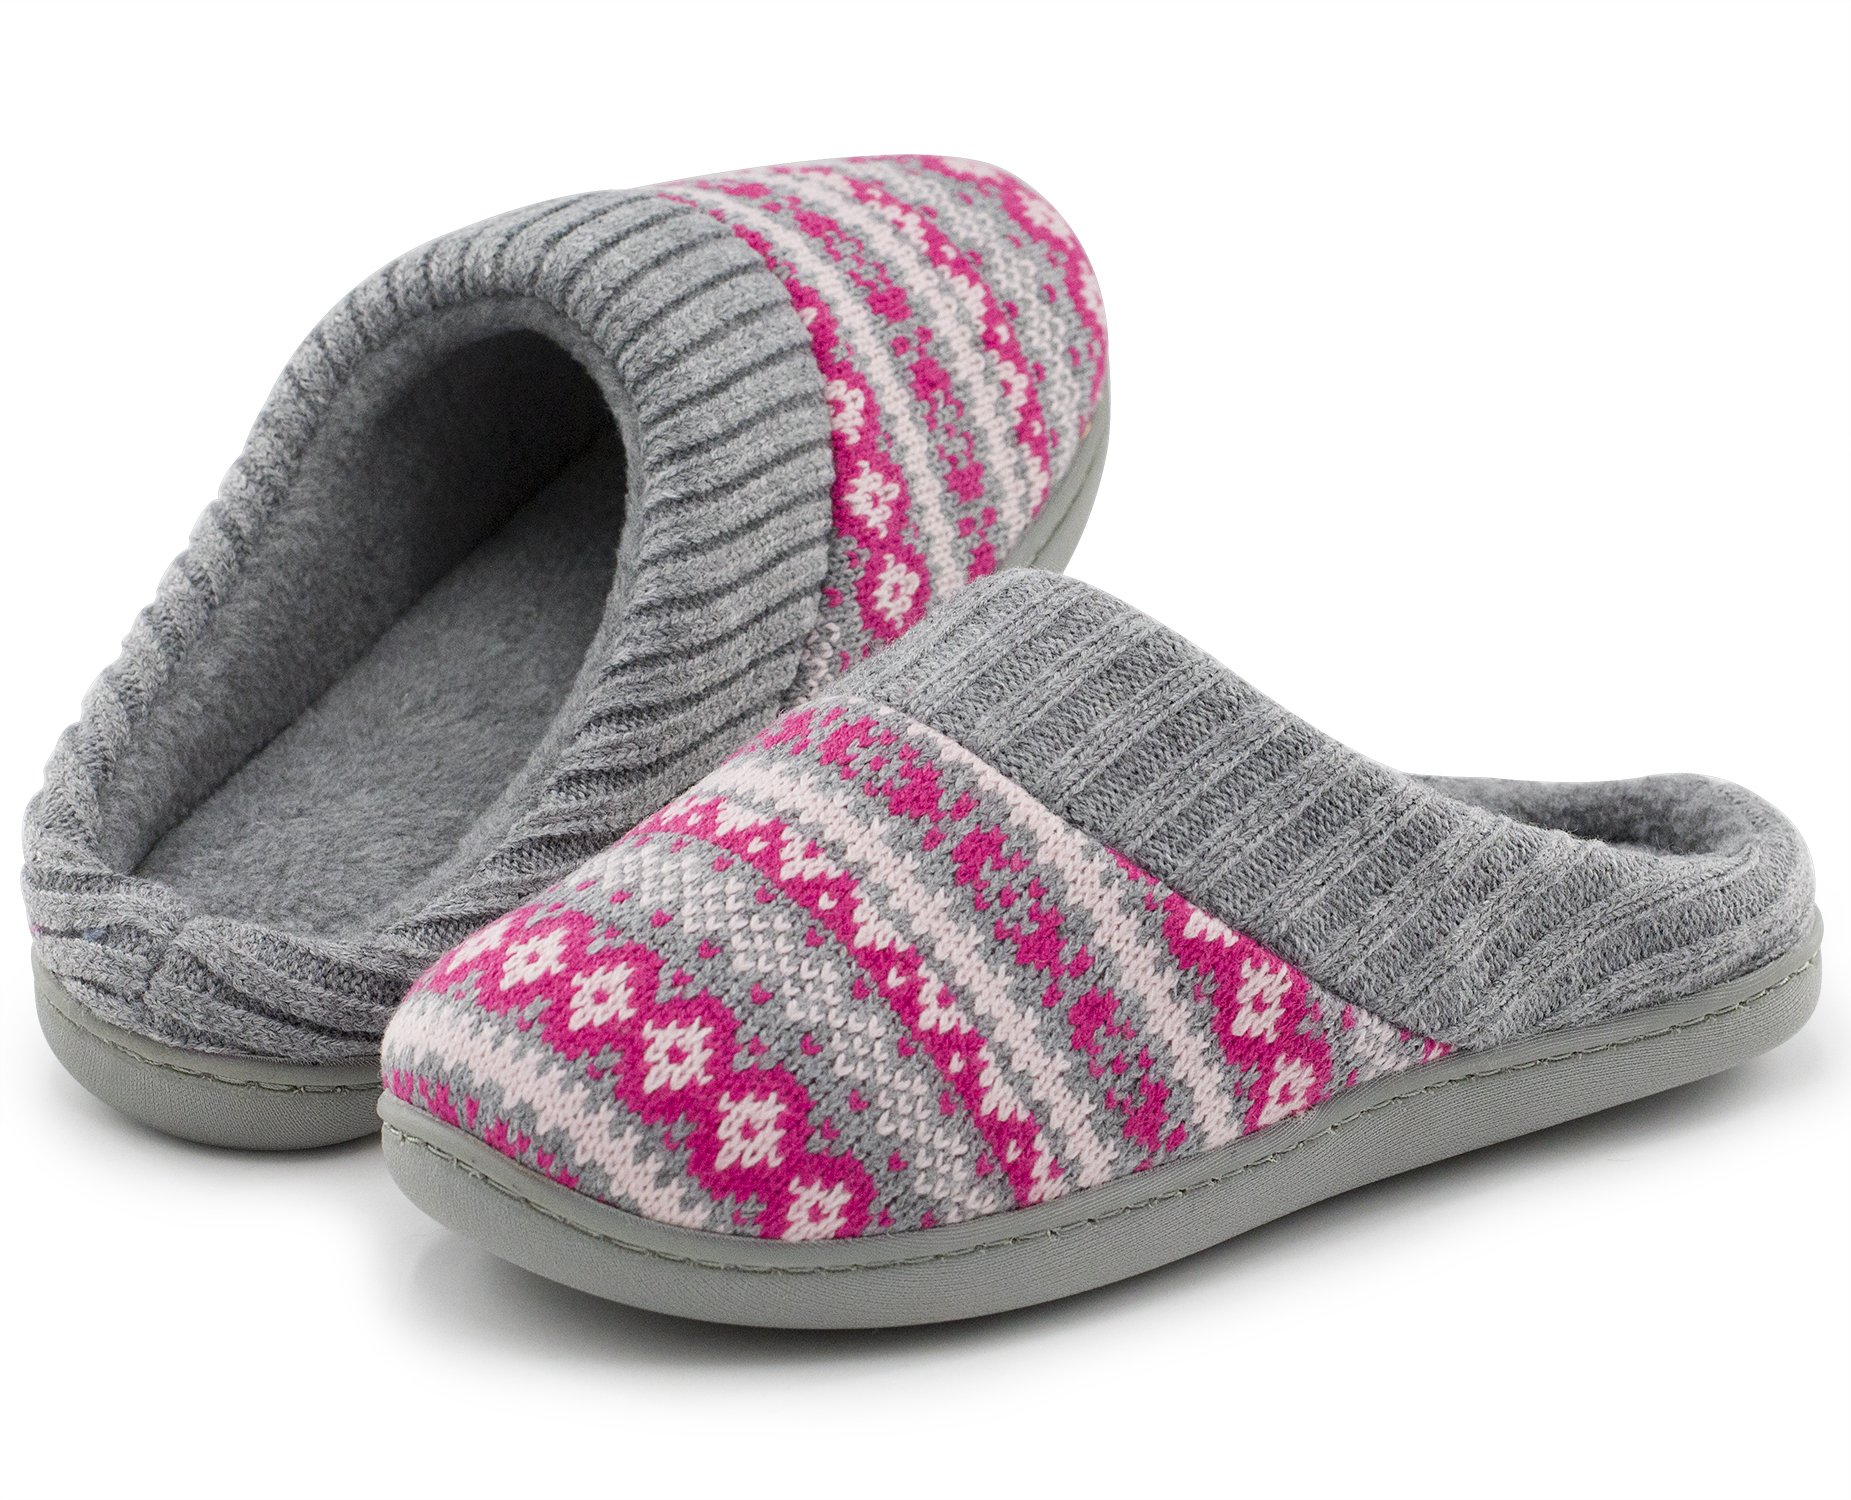 Women House Slippers Sweater Knit Scuff 9-10 B(M) US Size Rose Red Color New